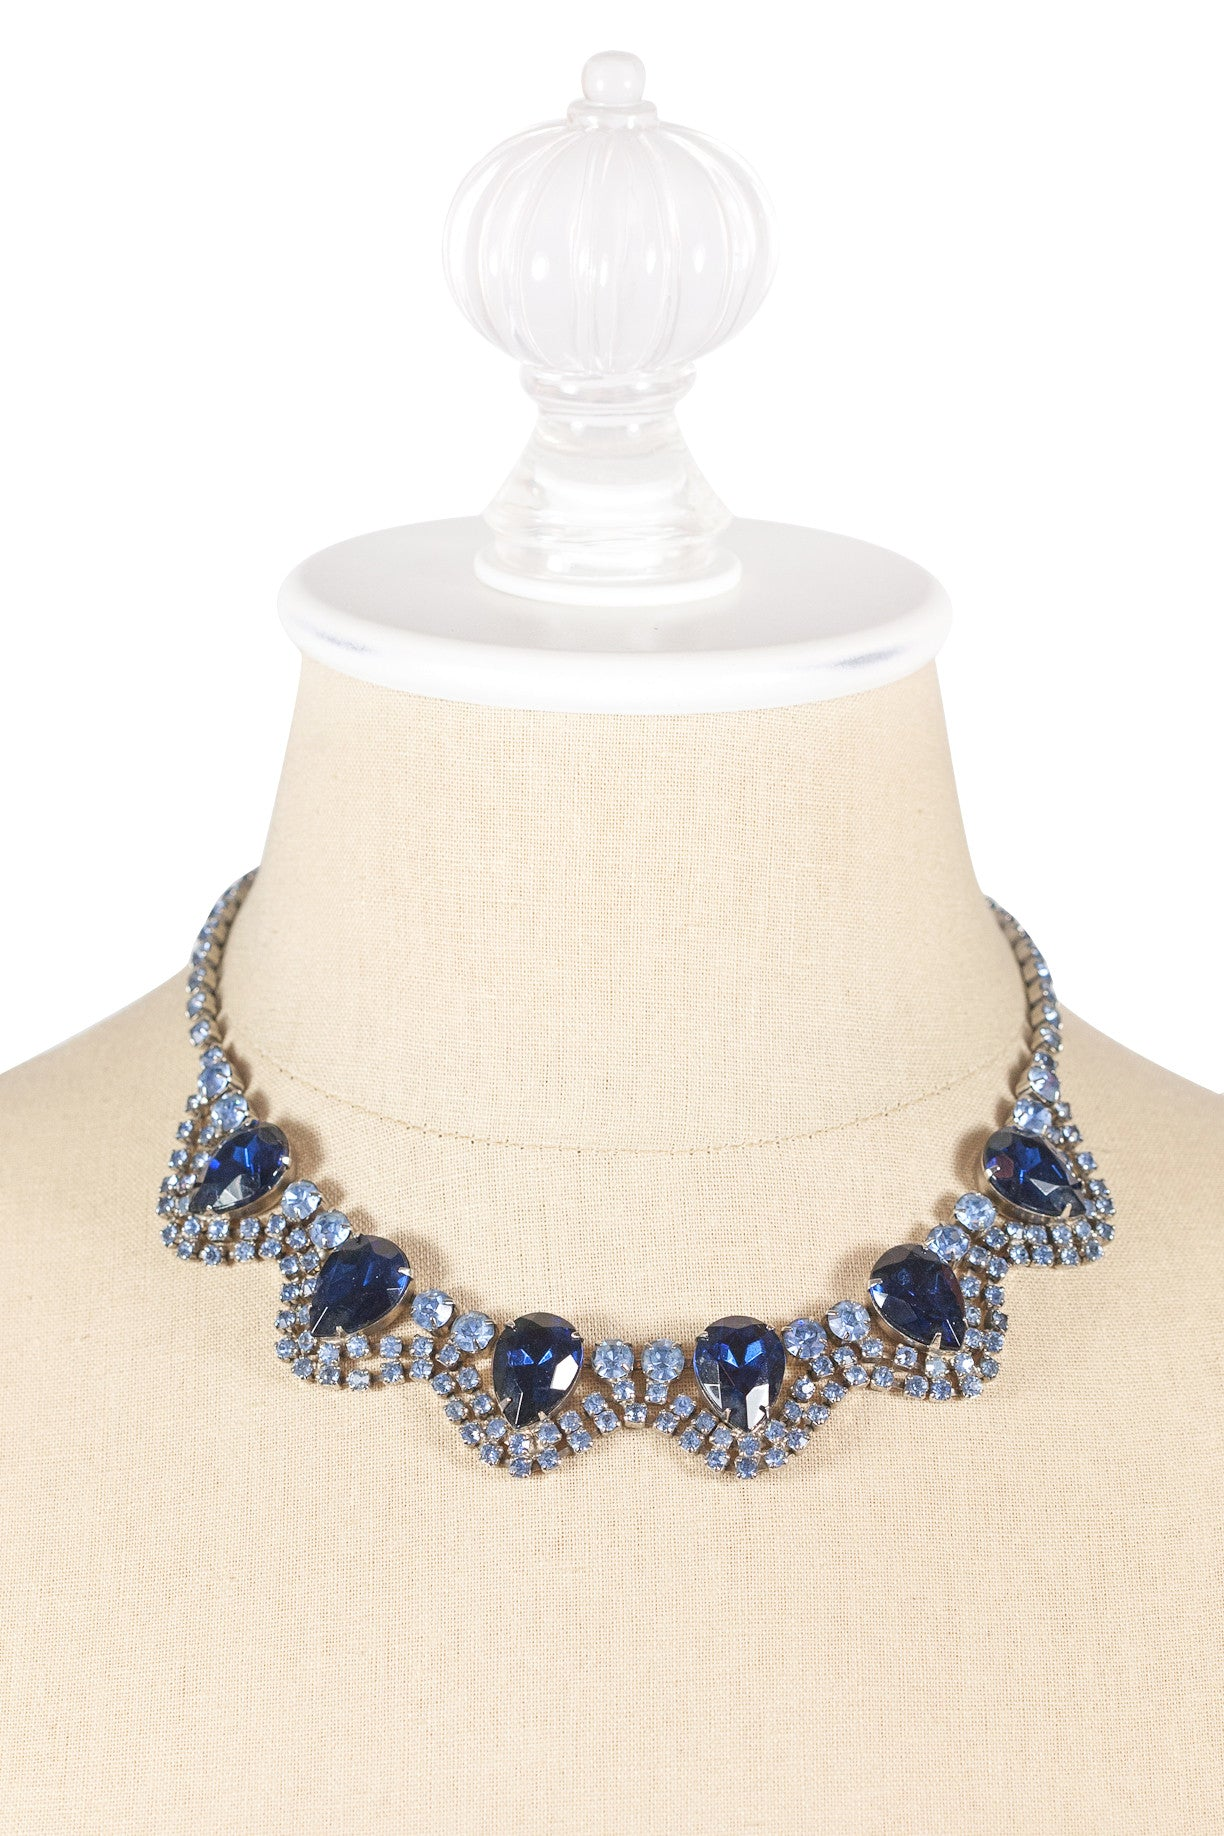 50's__Vintage__Blue Rhinestone Bauble Necklace